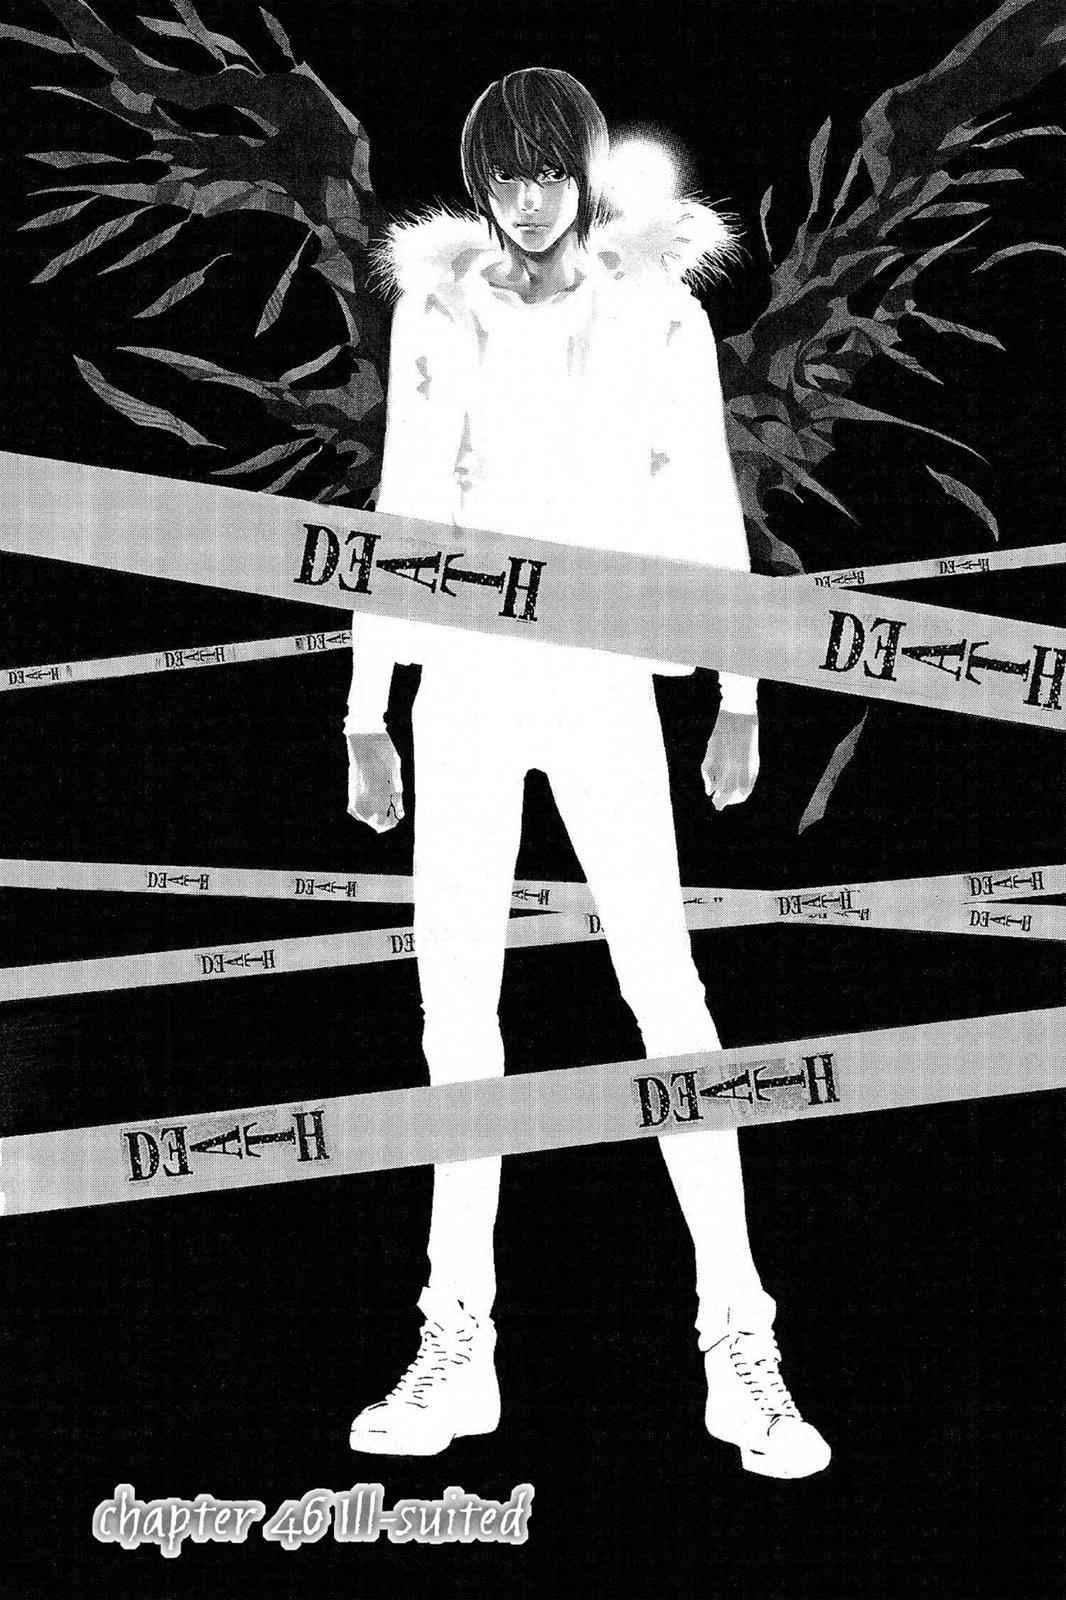 Death Note Chapter 46 Page 1